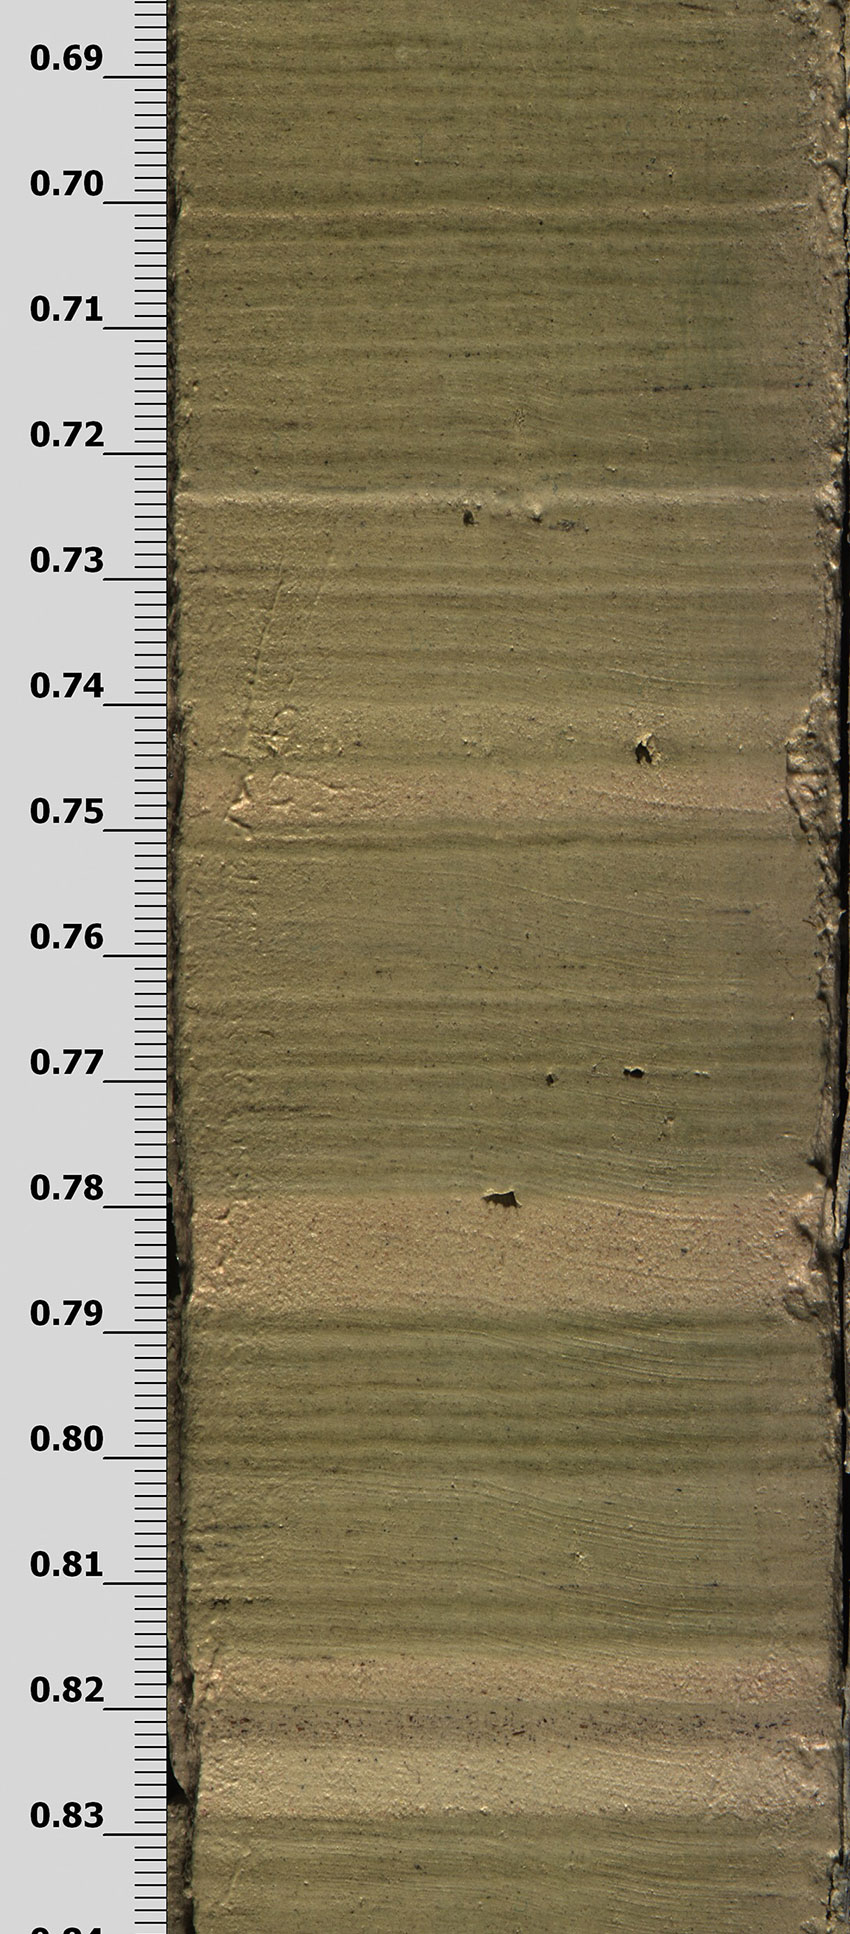 A part of the sediment core retrieved by researchers from the Great Blue Hole off Belize showing the different layers of sediment deposits